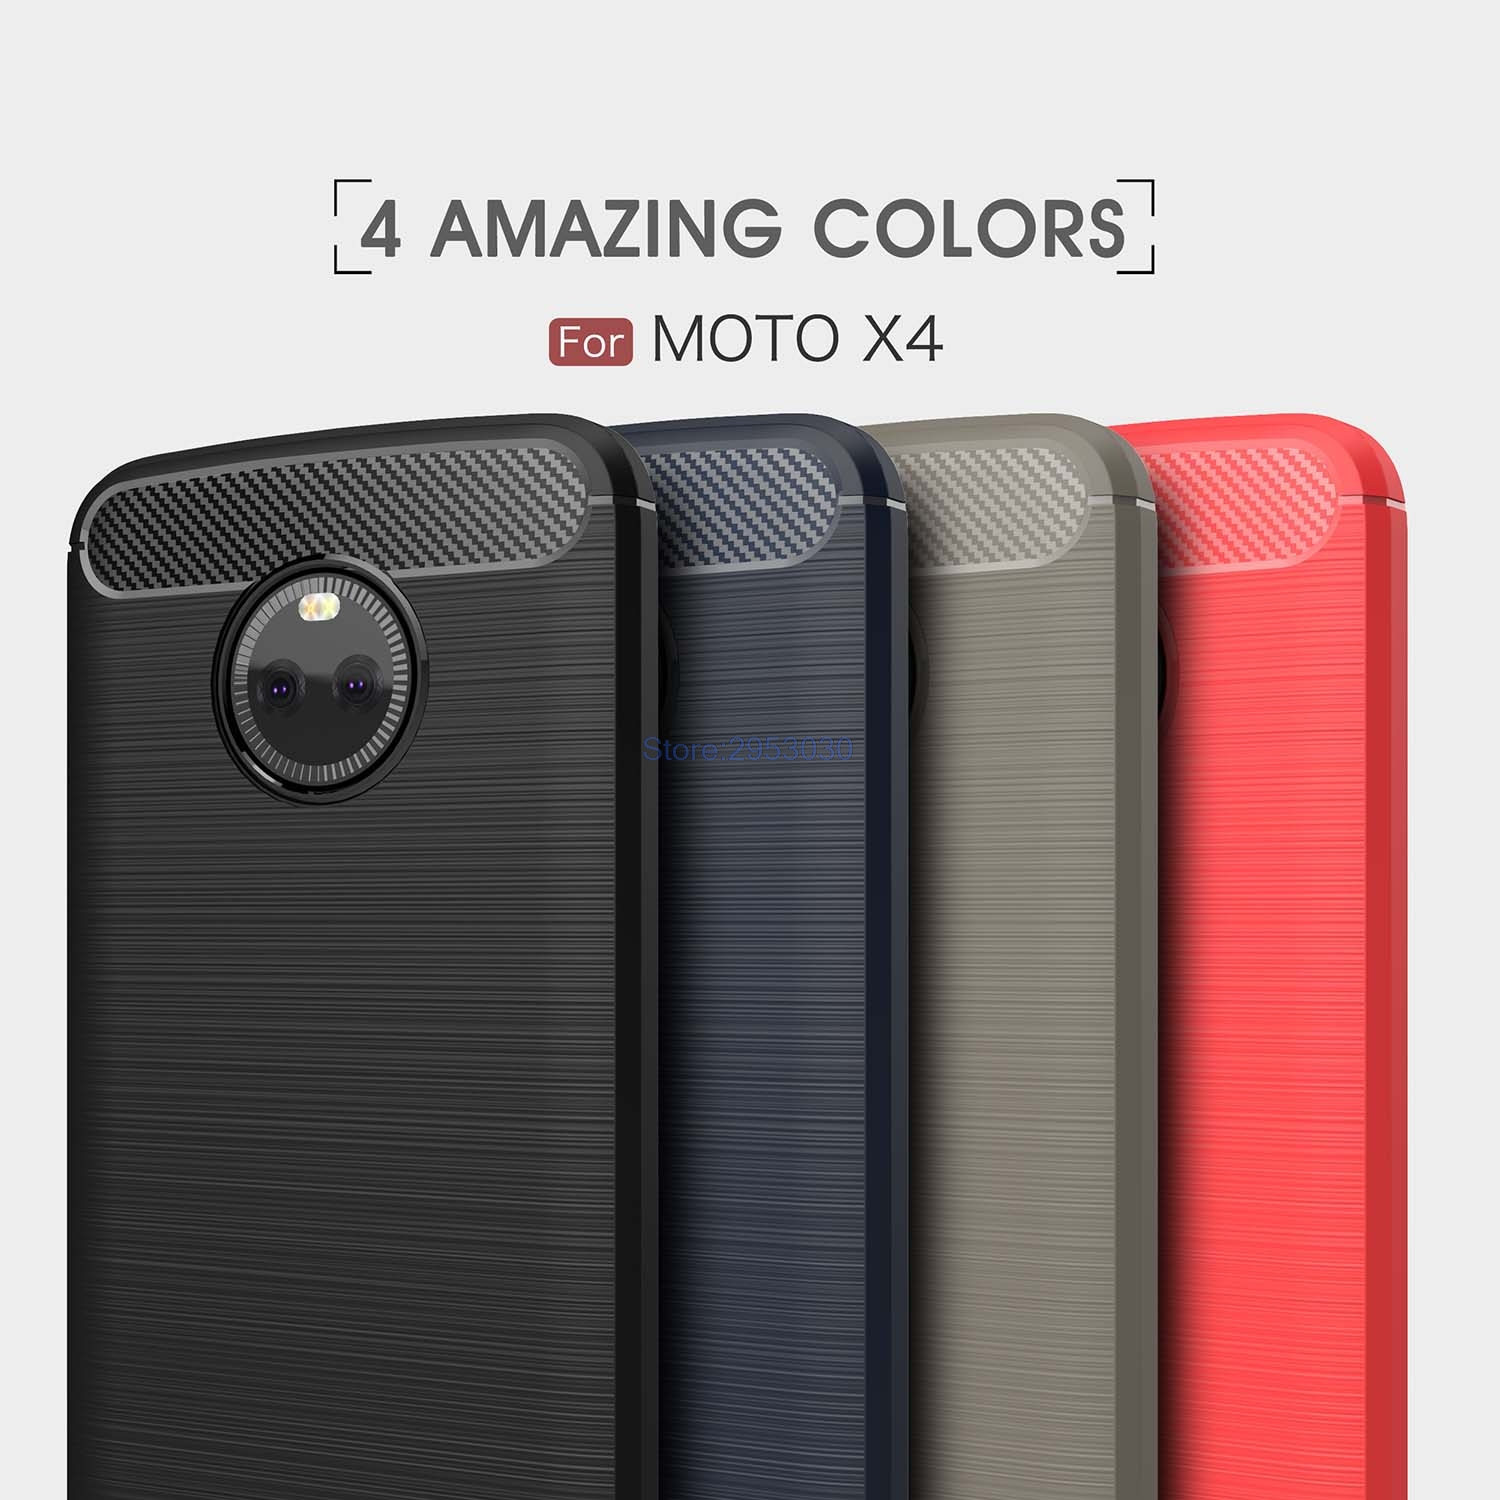 TPU Case for <font><b>Motorola</b></font> <font><b>Moto</b></font> X4 <font><b>XT1900</b></font> <font><b>XT1900</b></font>-5 <font><b>XT1900</b></font>-7 Soft Silicone Carbon Fibe Case Mobile Phone Cover for <font><b>Moto</b></font> X Gen 4 Cover image